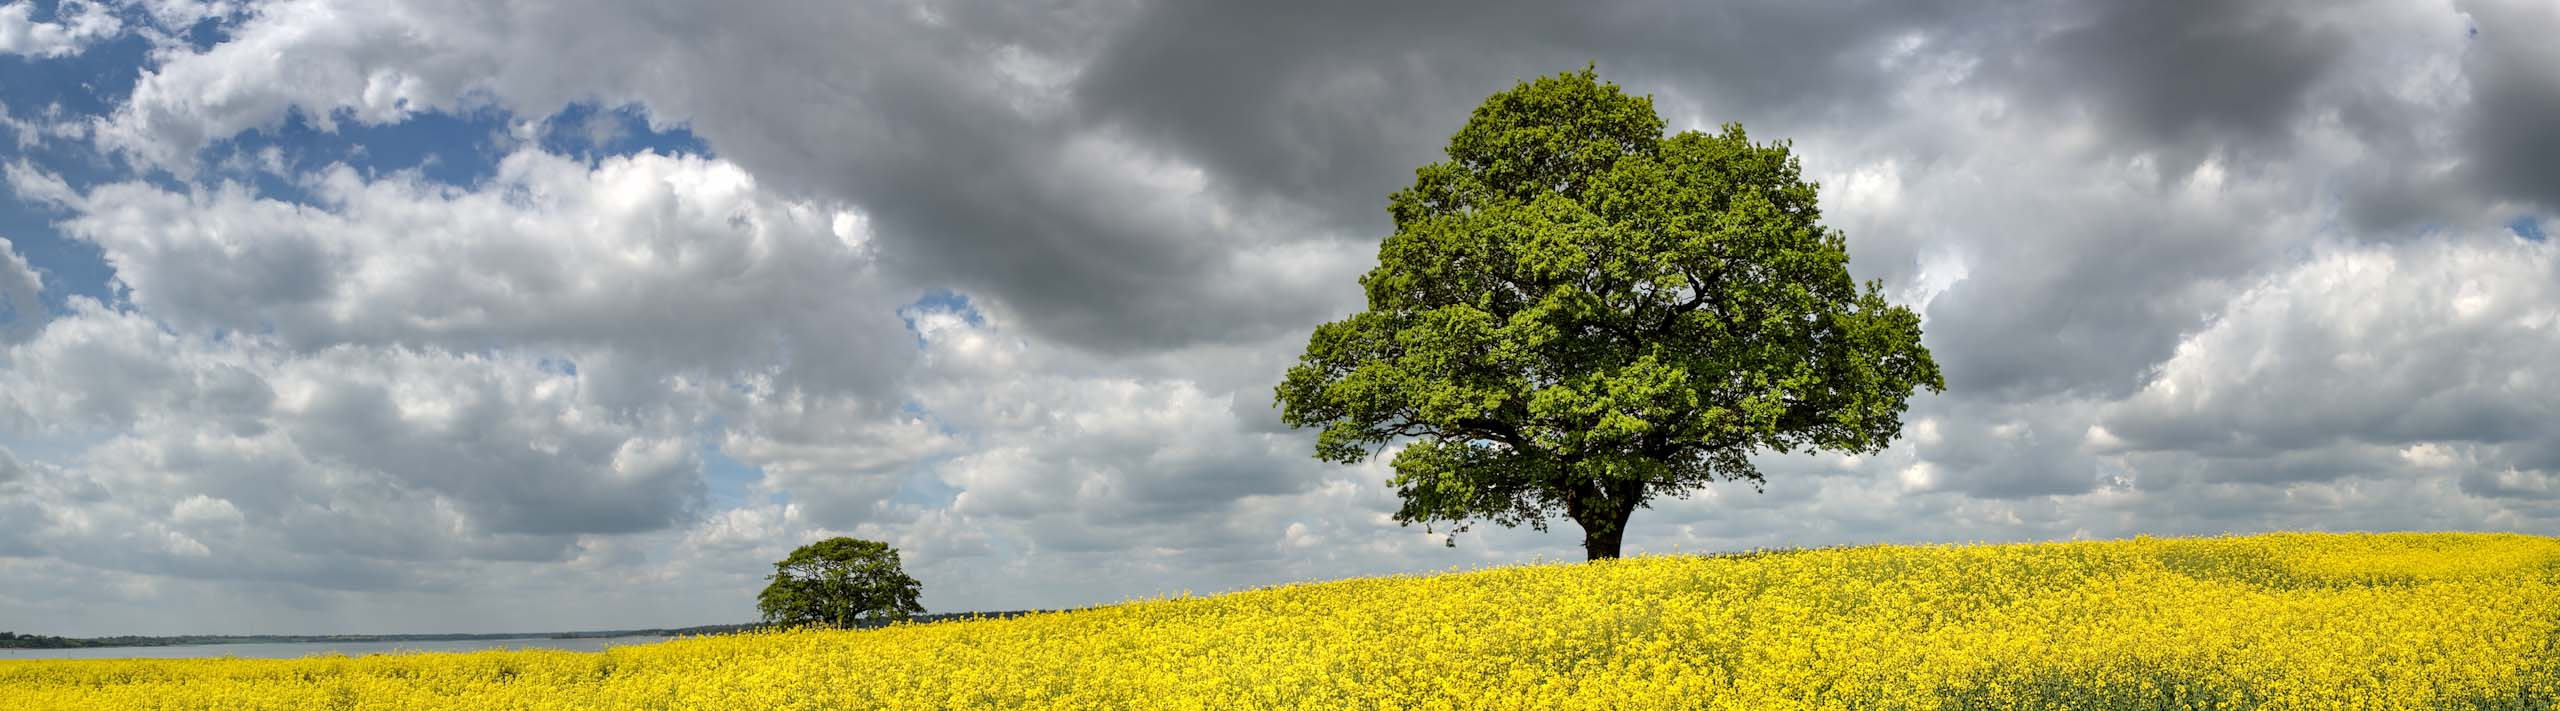 Landscape Photograph Spring in Suffolk of oak trees in a rape field by Nick Oakley Photography